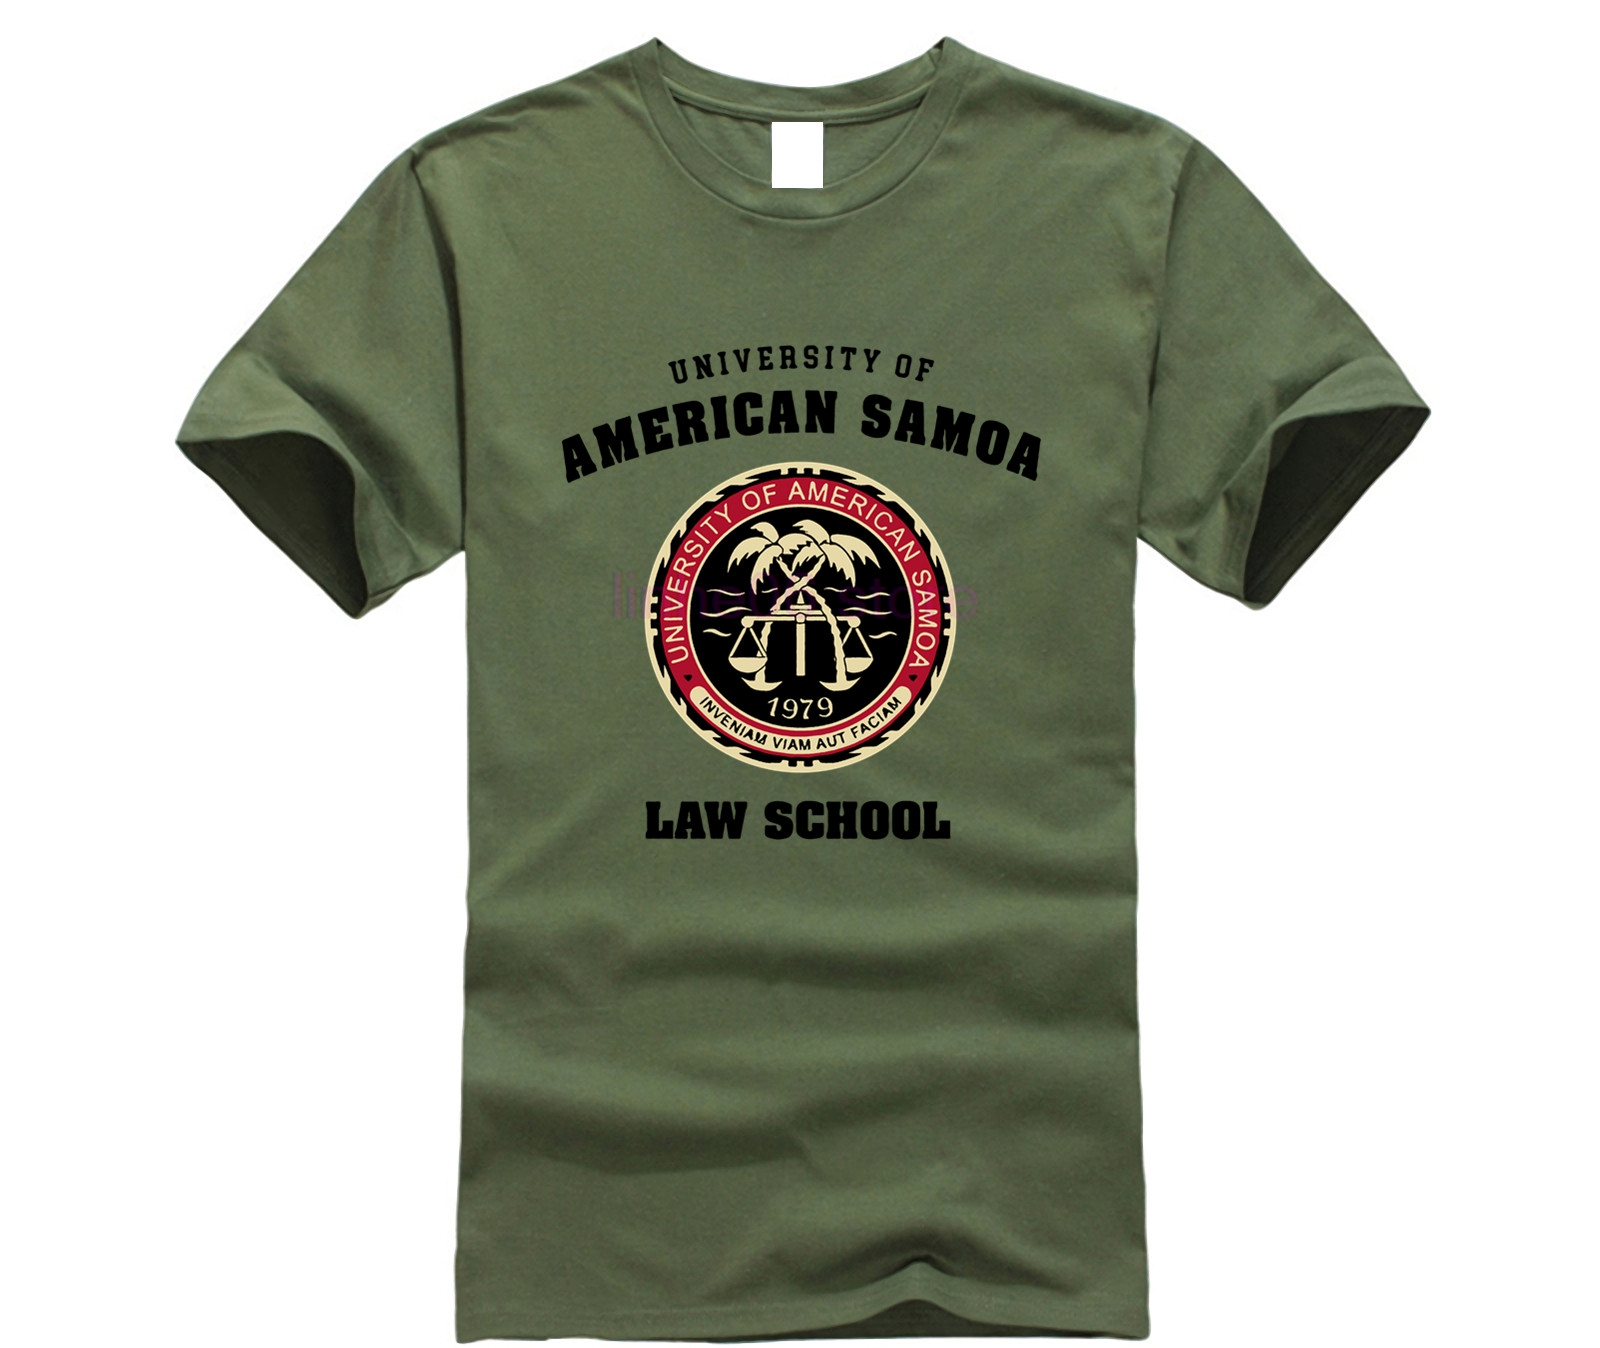 BCS University of American Samoa Law School T Shirts TV Show better call saul jesse pinkman heisenberg walter breaking bad Tees image